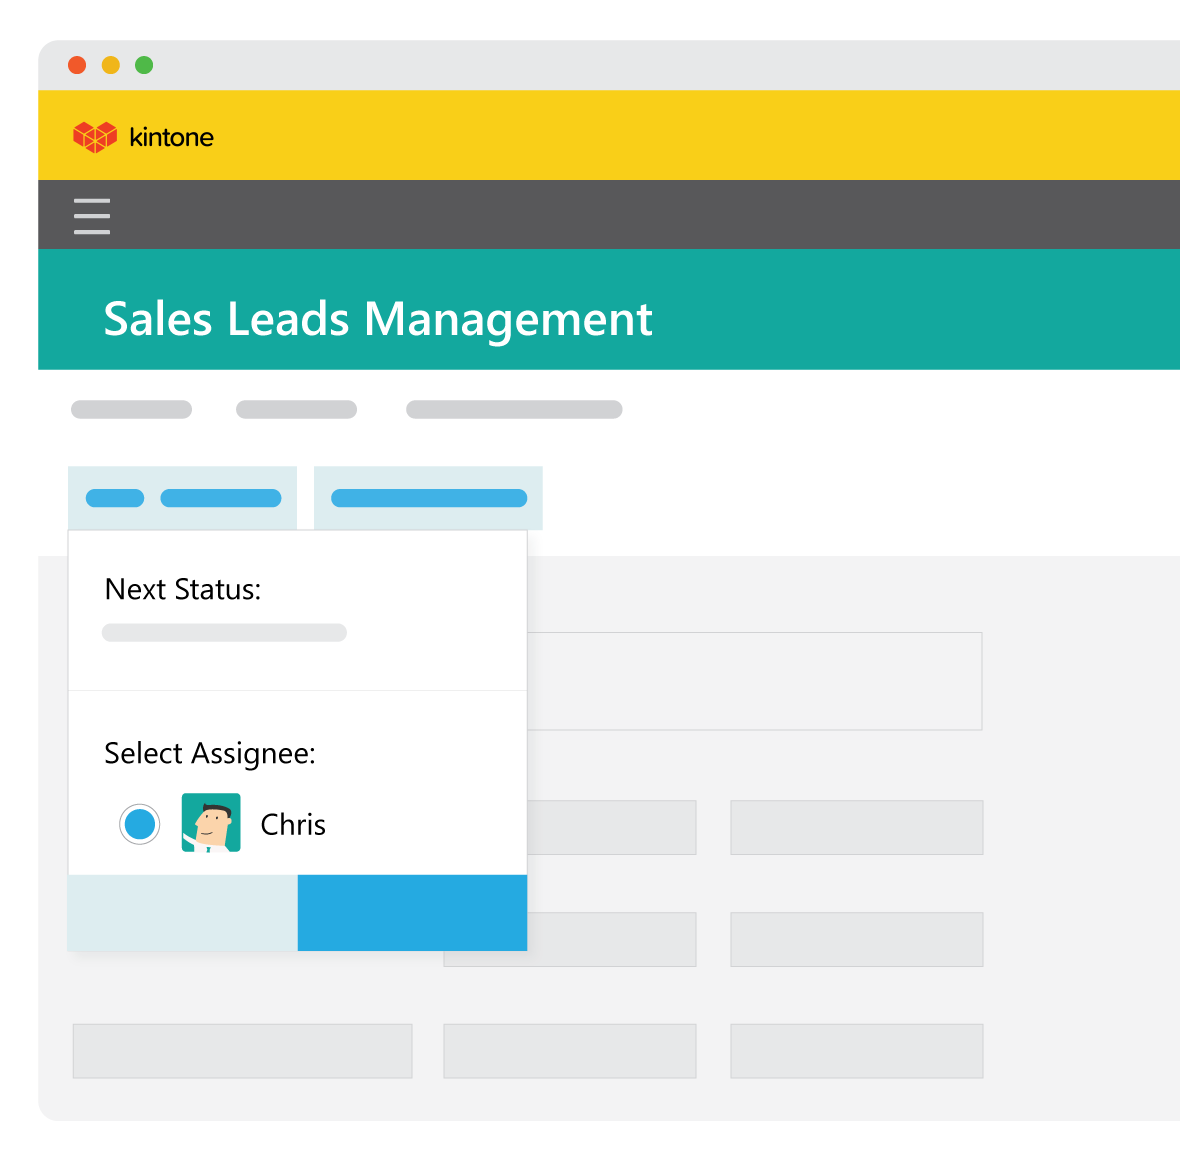 sales lead management workflow